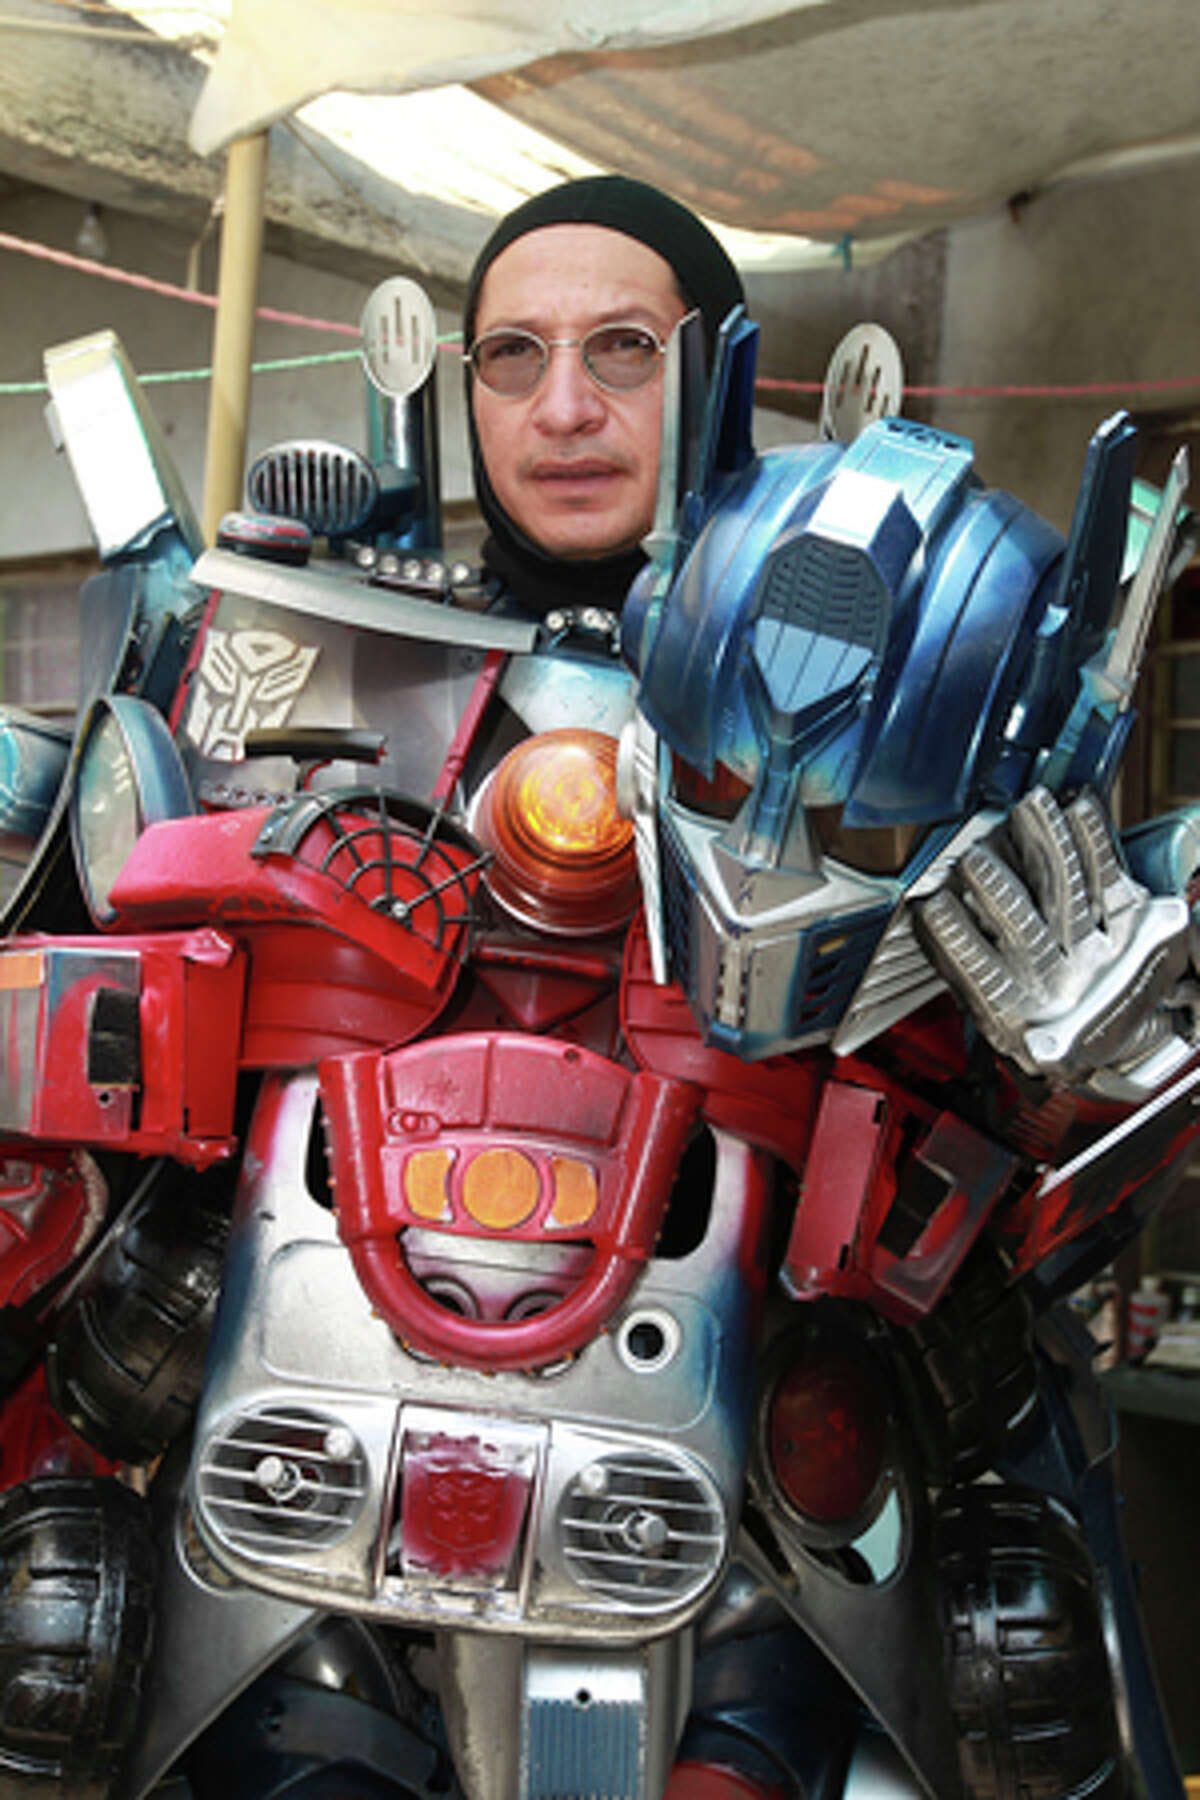 Jose Luis Mendez Luna, 38, poses wearing his Optimus Prime Transformer costume at home in a working class neighborhood in Mexico City, Wednesday, June 8, 2011. Luna whose daytime job is a plumber, is, along with his wife, both avid cosplayer and cosmakers, a type of performance art in which participants don and make costumes and accessories to represent a specific character. Their characters of choice are the Transformers and the Star Wars characters.